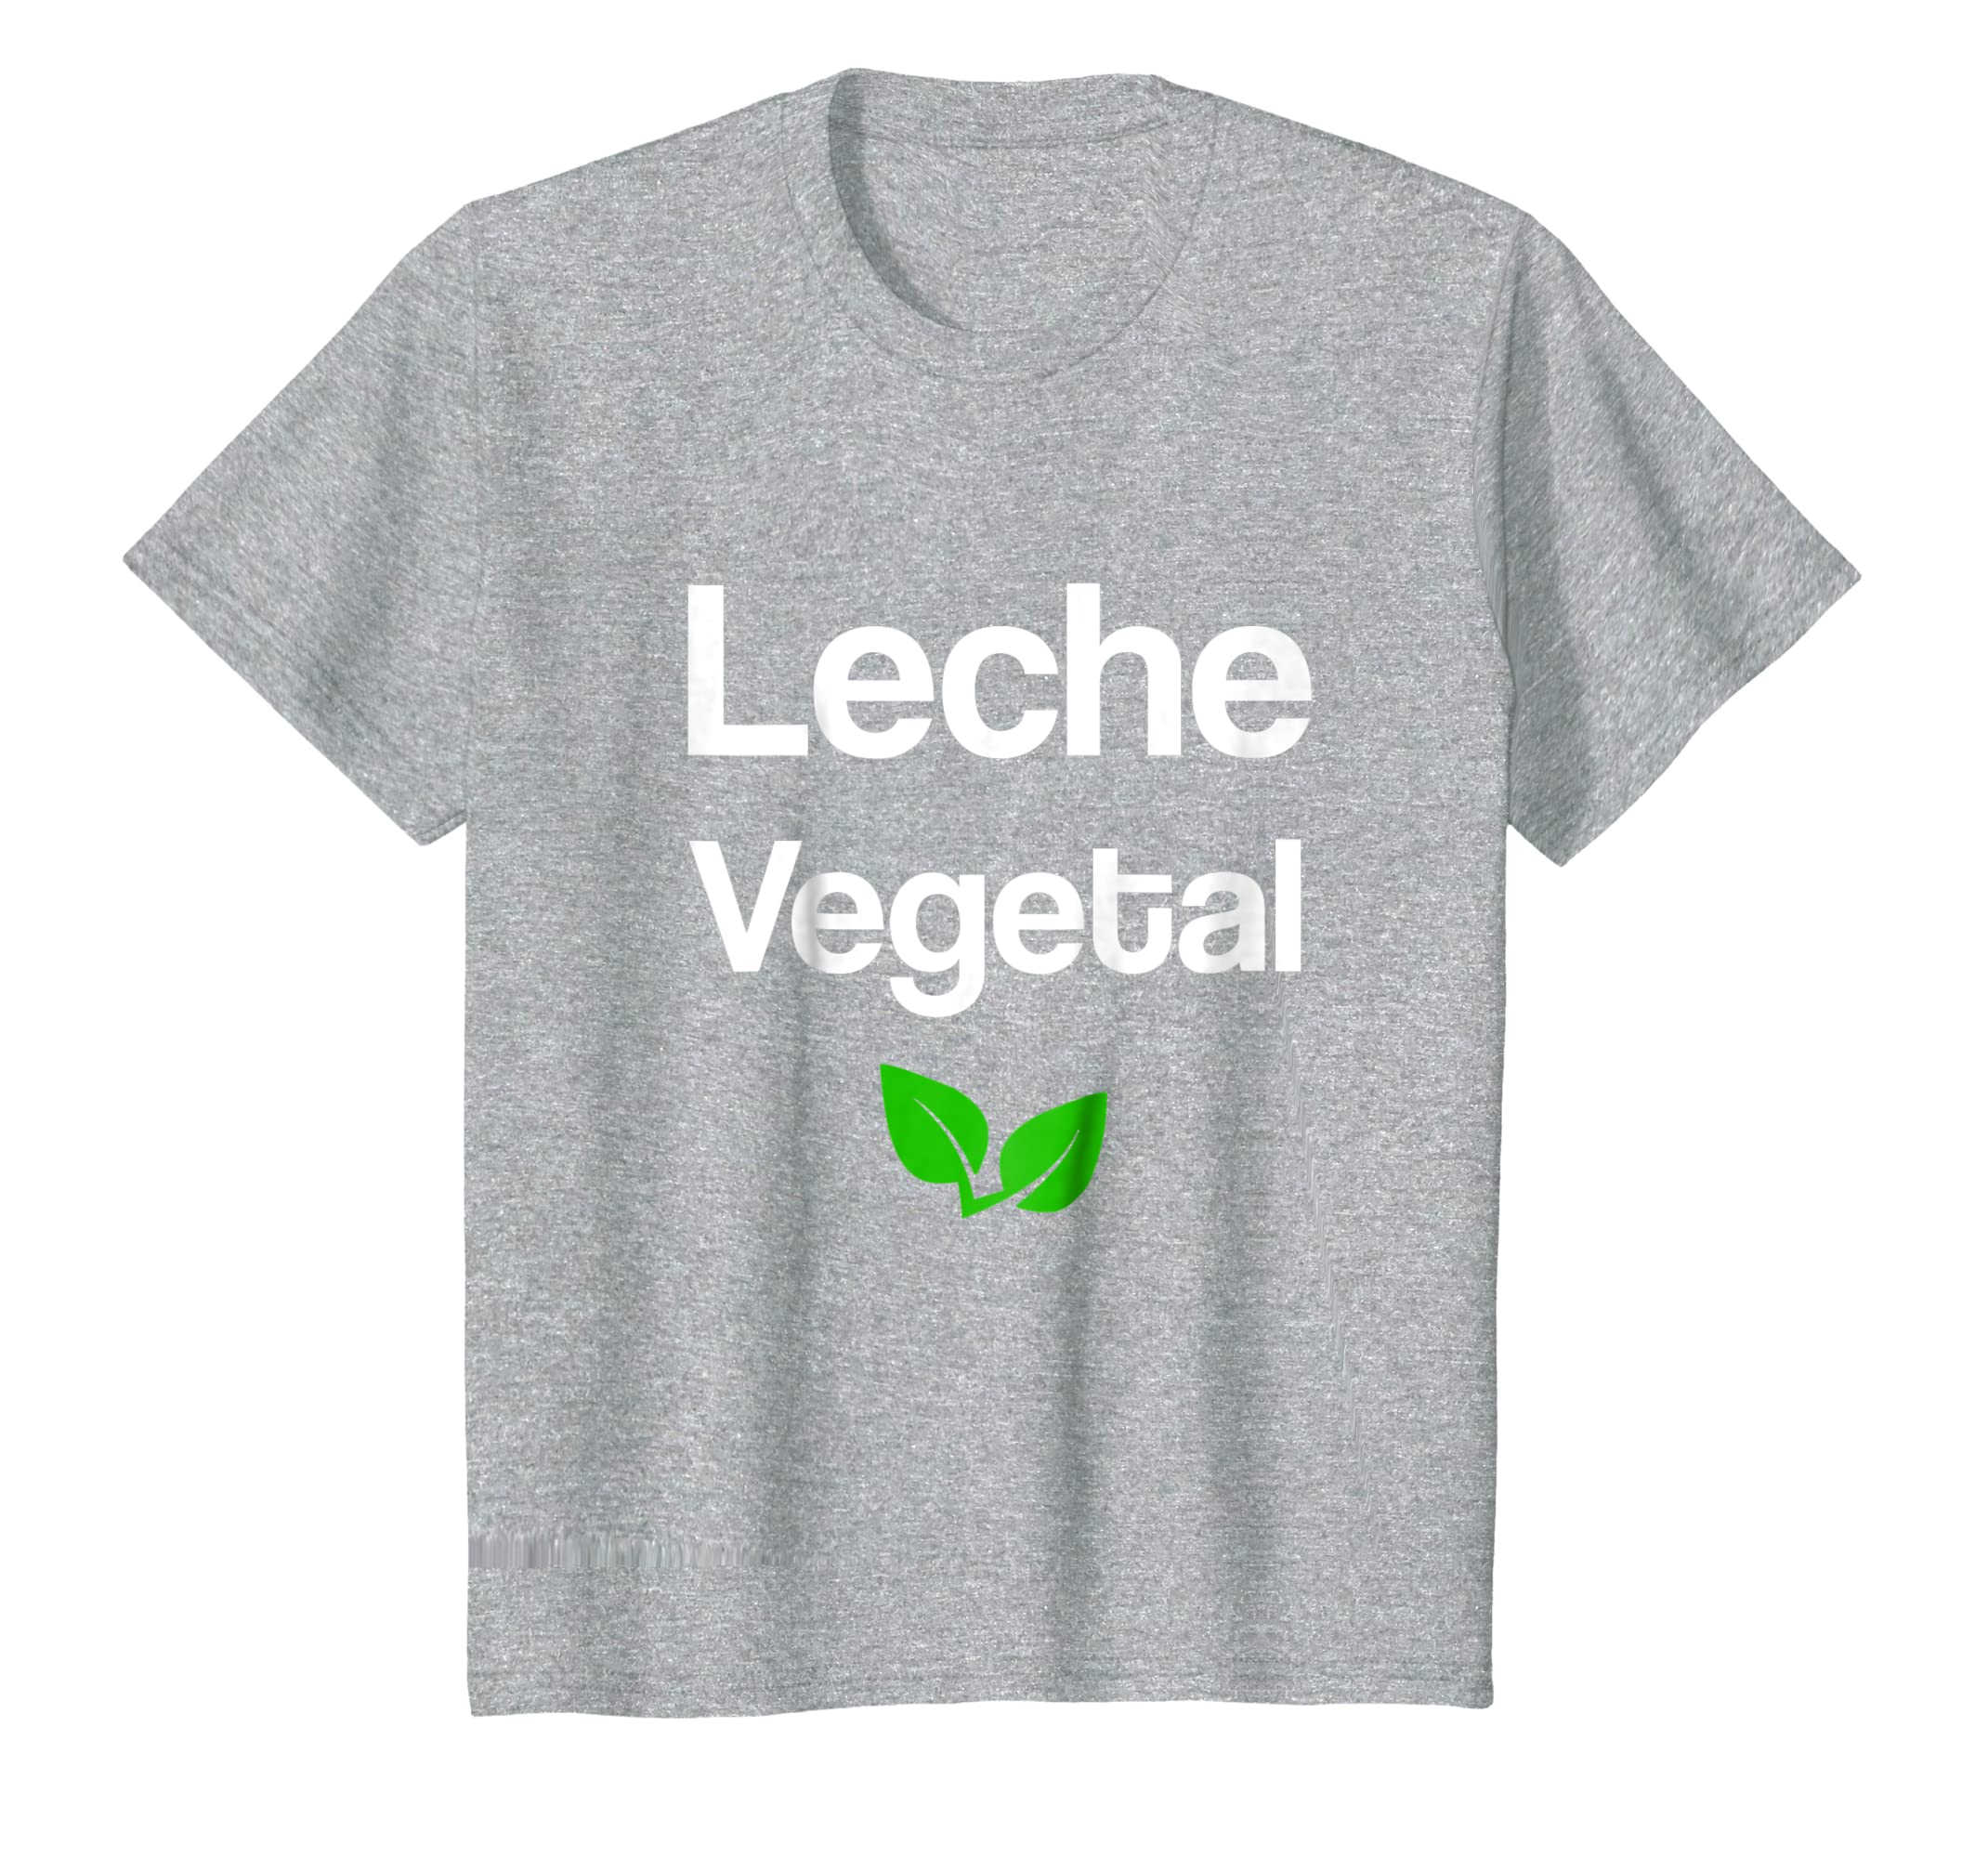 Amazon.com: Leche vegetal Shirt Camiseta con frases Veganos Vegetarianos: Clothing